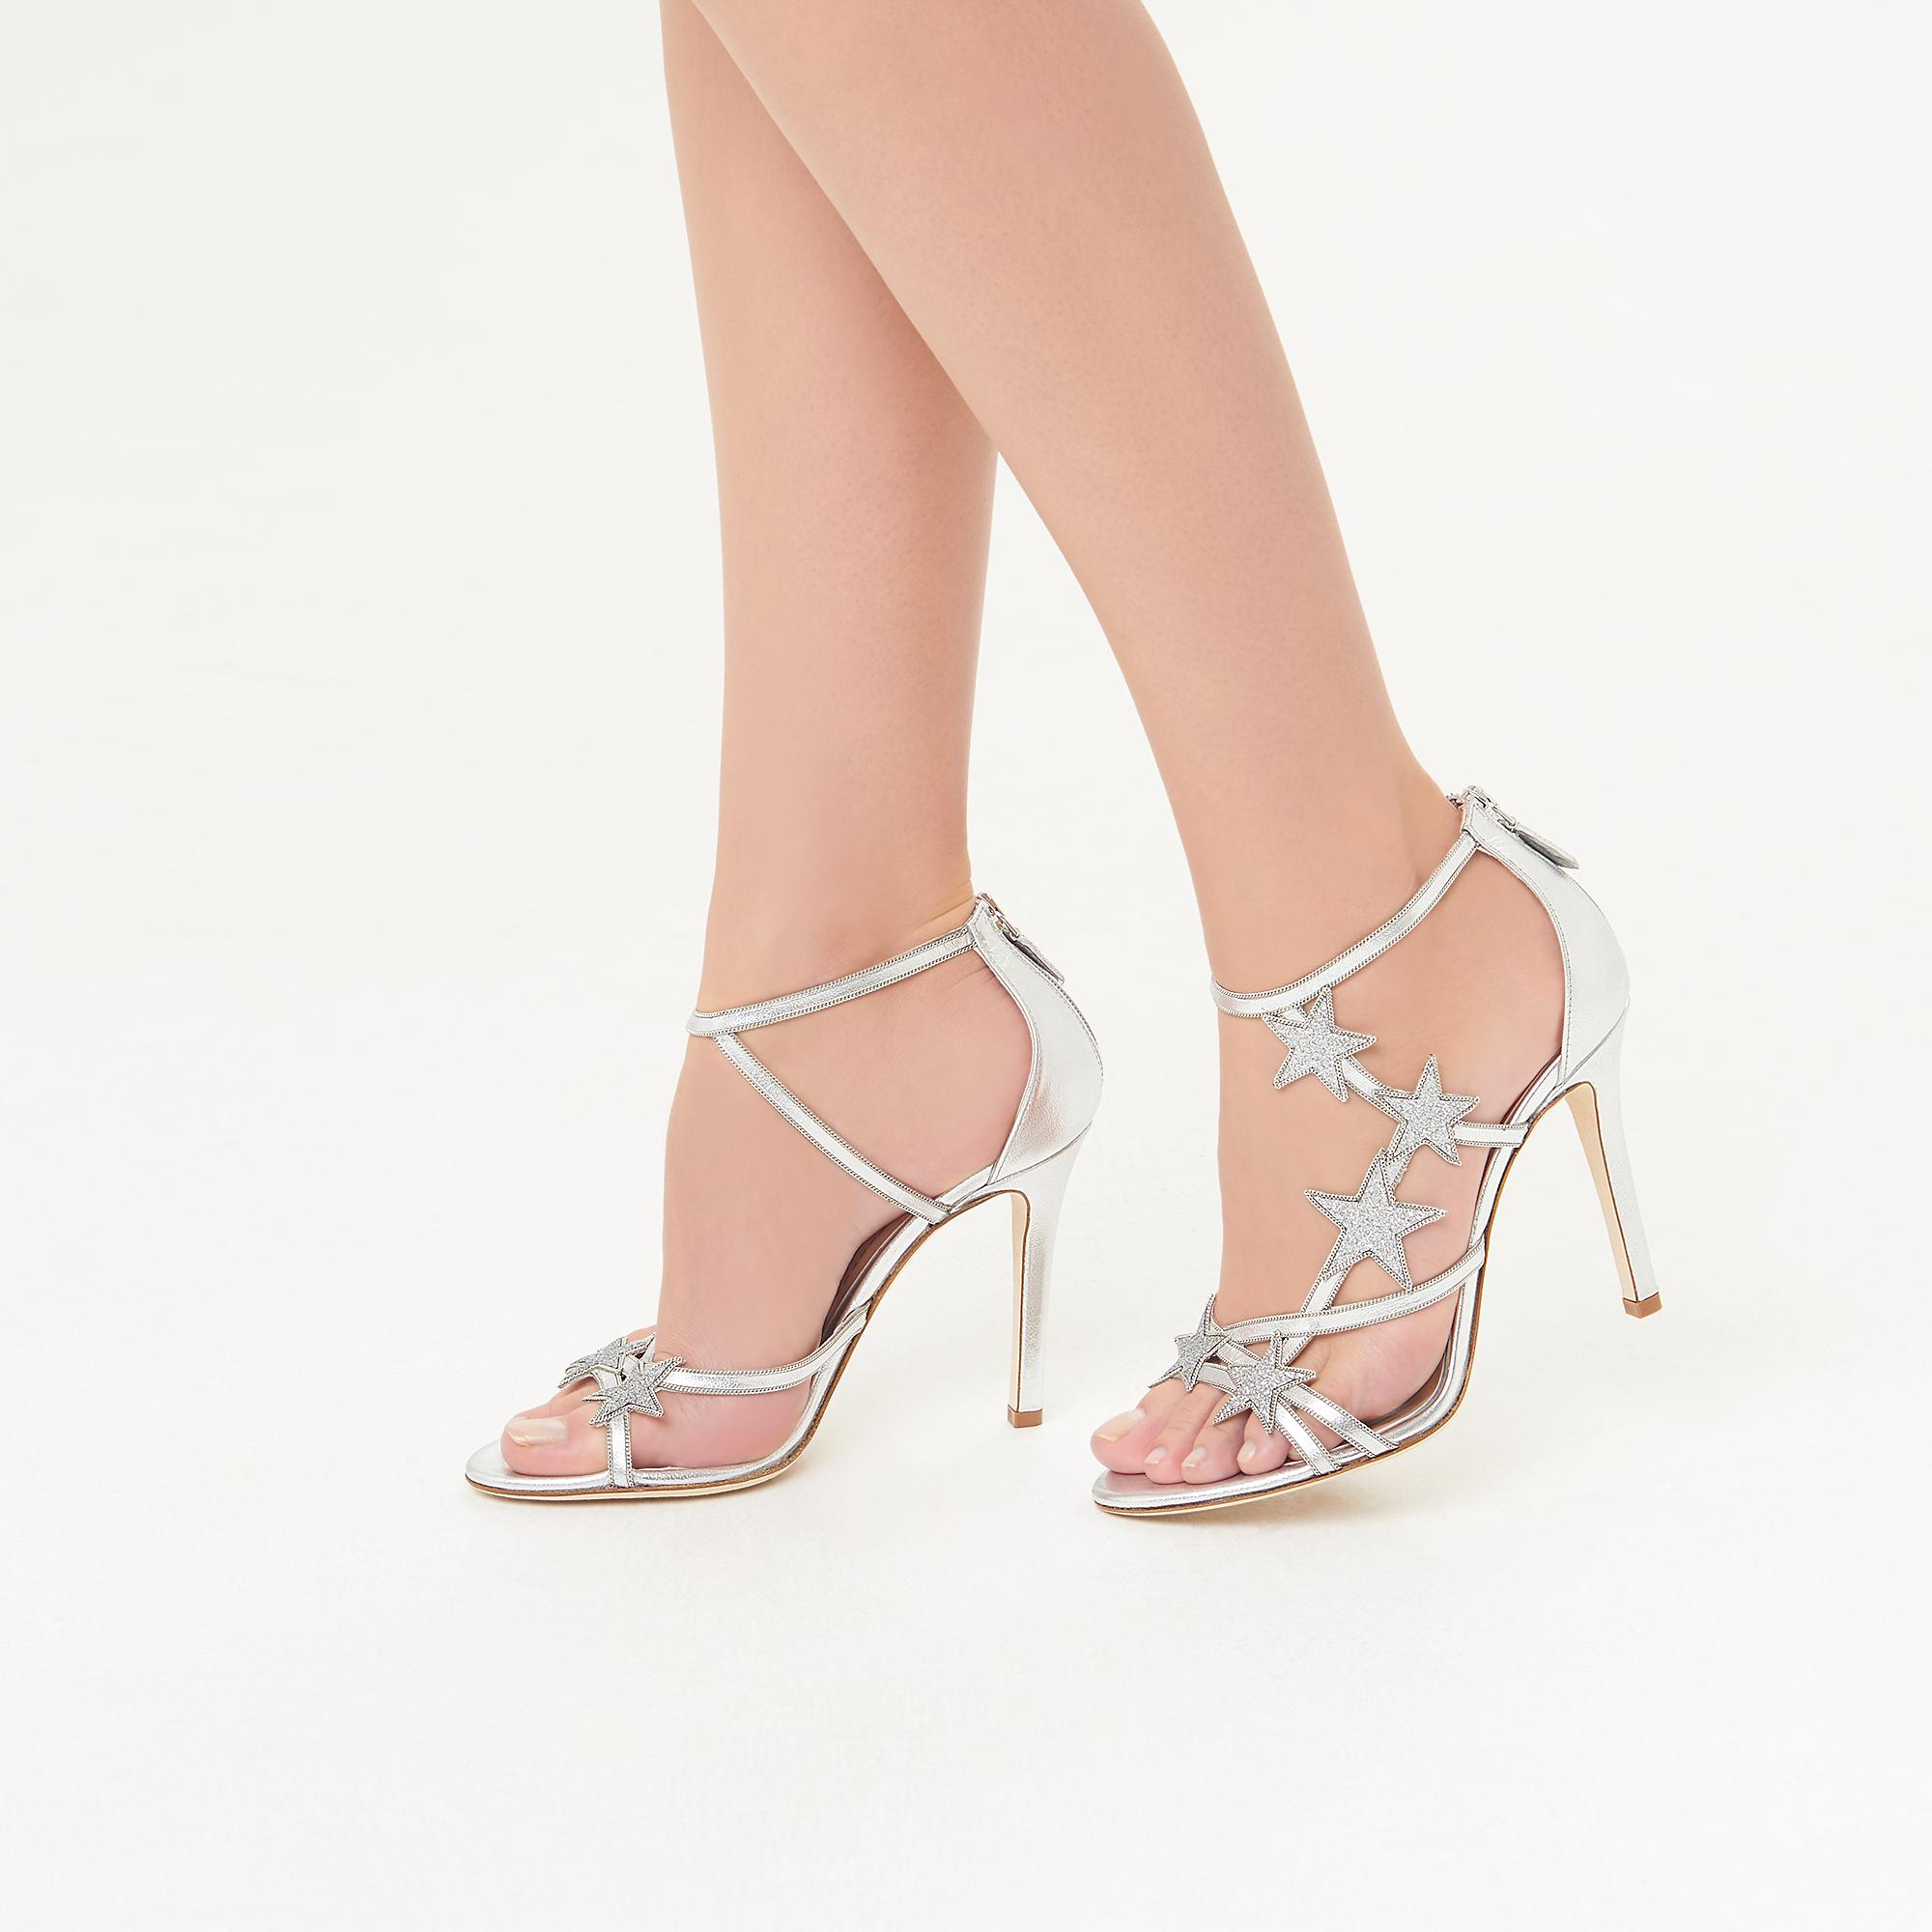 51a142fee18 Felicity Silver Leather Sandals